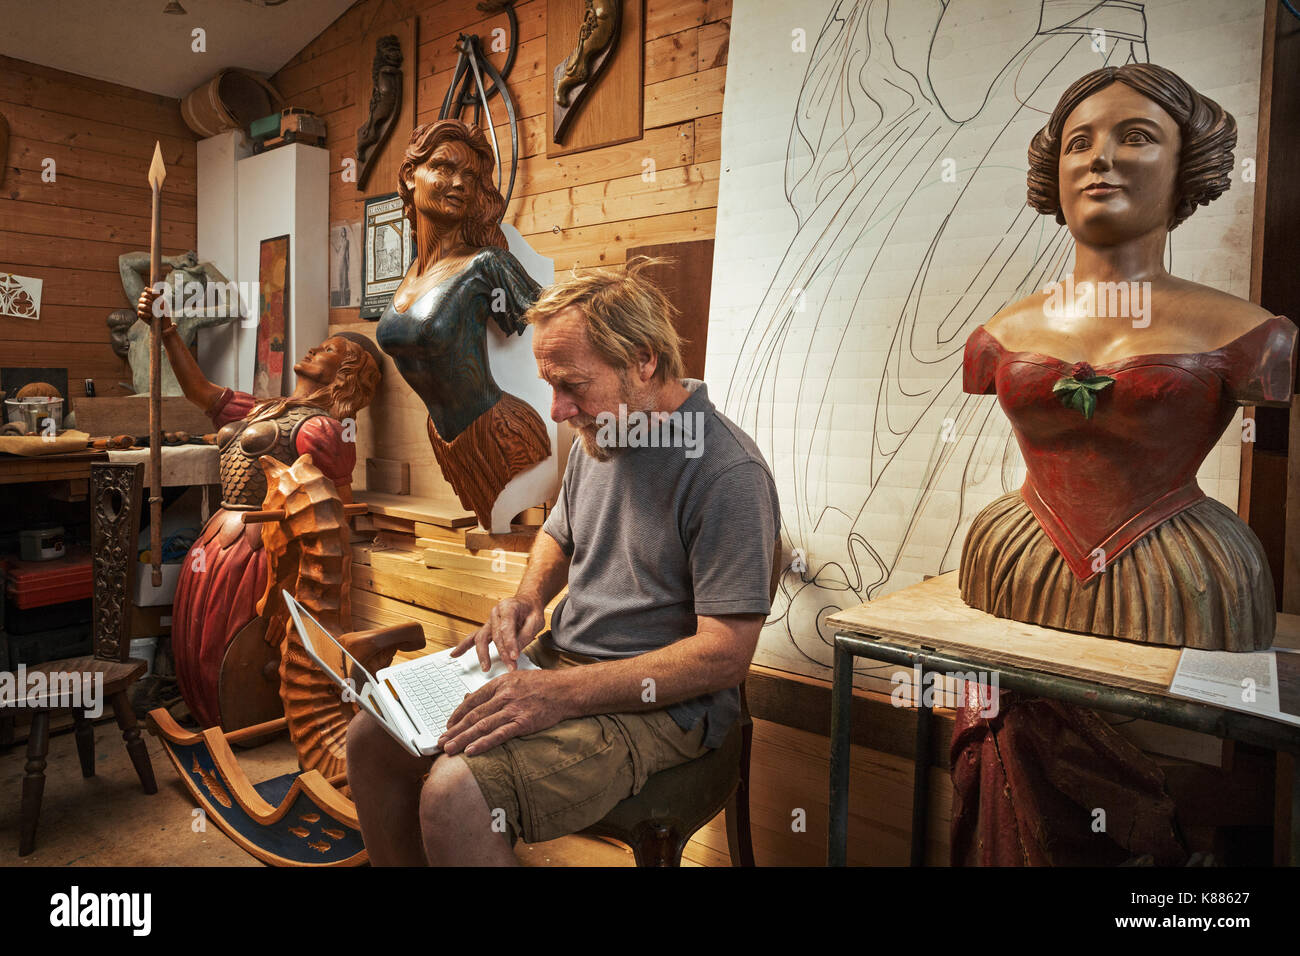 A woodworker, skilled craftsman sitting in a workshop using a laptop on his knees, surrounded by carved wooden female ship's figureheads. - Stock Image